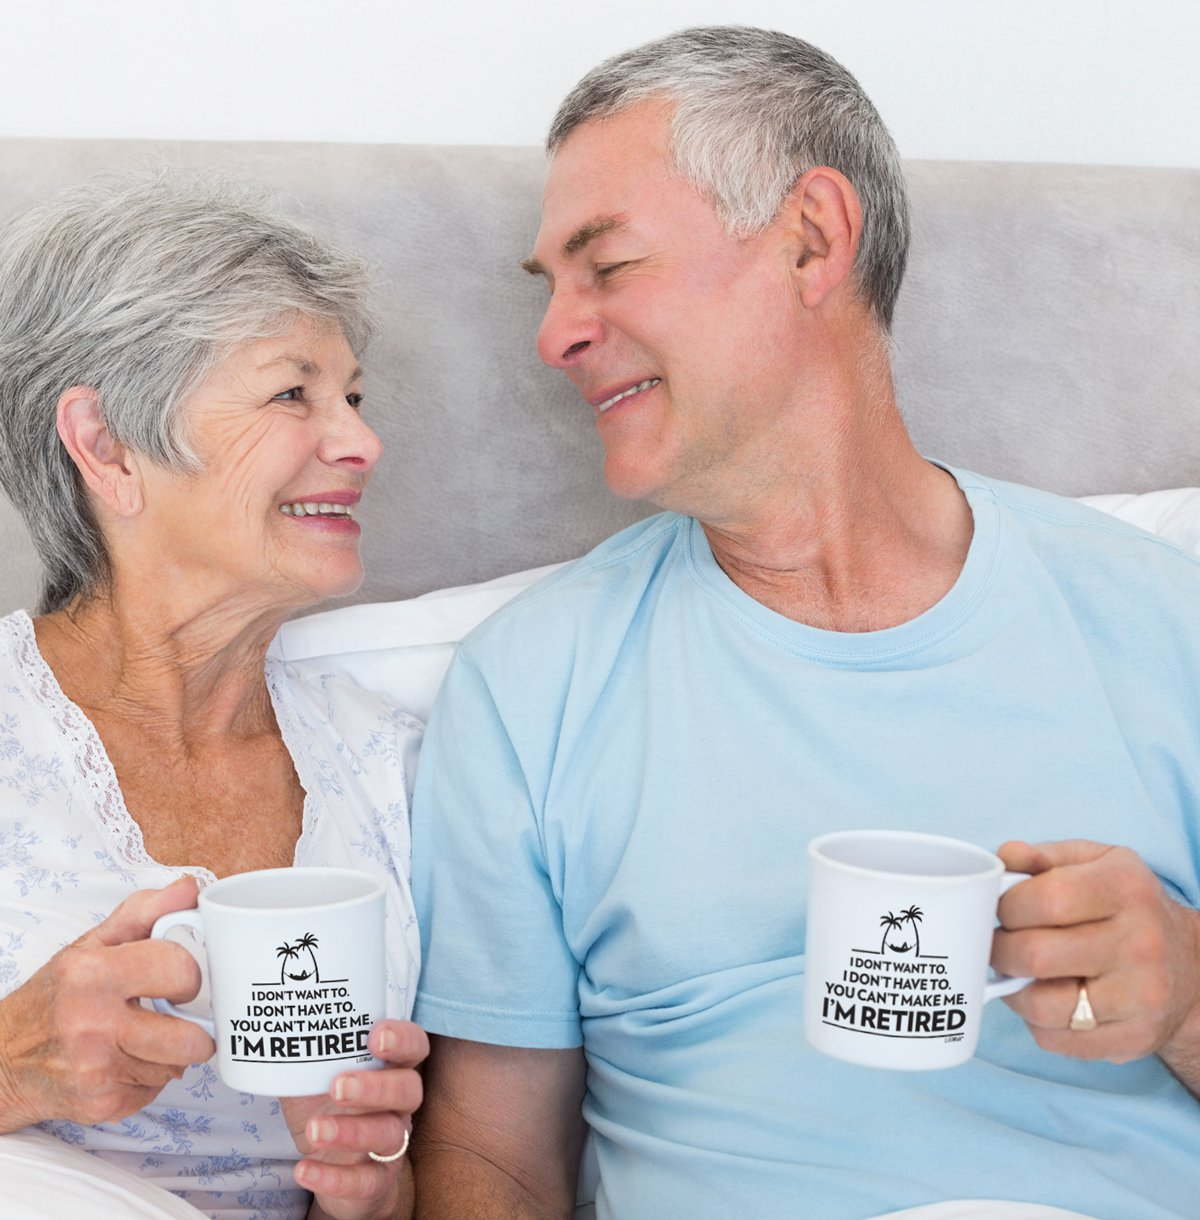 Funny Retirement Gifts Gag for Women Men Dad Mom Valentines Day Husband Wife Boyfriend Humorous Retirement Coffee Mug Gift Retired Mugs for Coworkers Office /& Family Unique Novelty Ideas for Her LiliWair